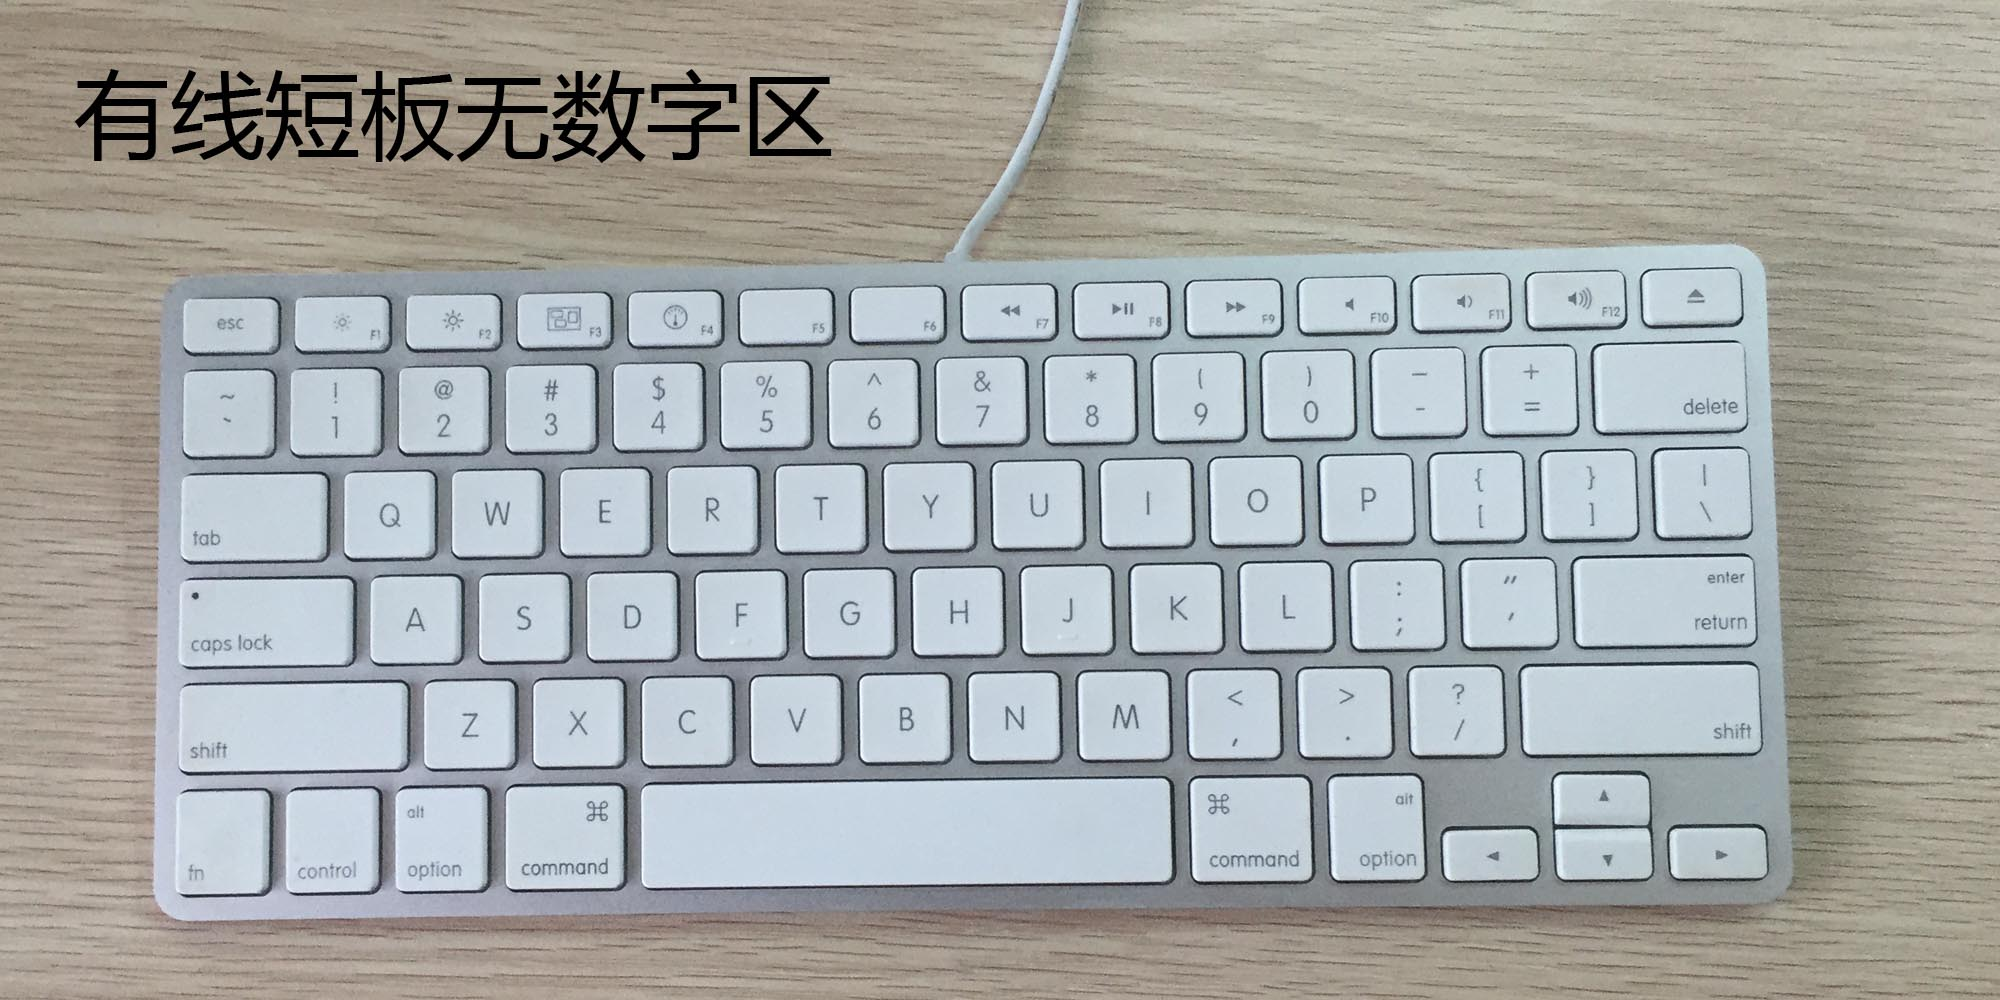 Package mail apple standard cable G6 keyboard aluminum alloy cable keyboard, with no digital board small keyboard